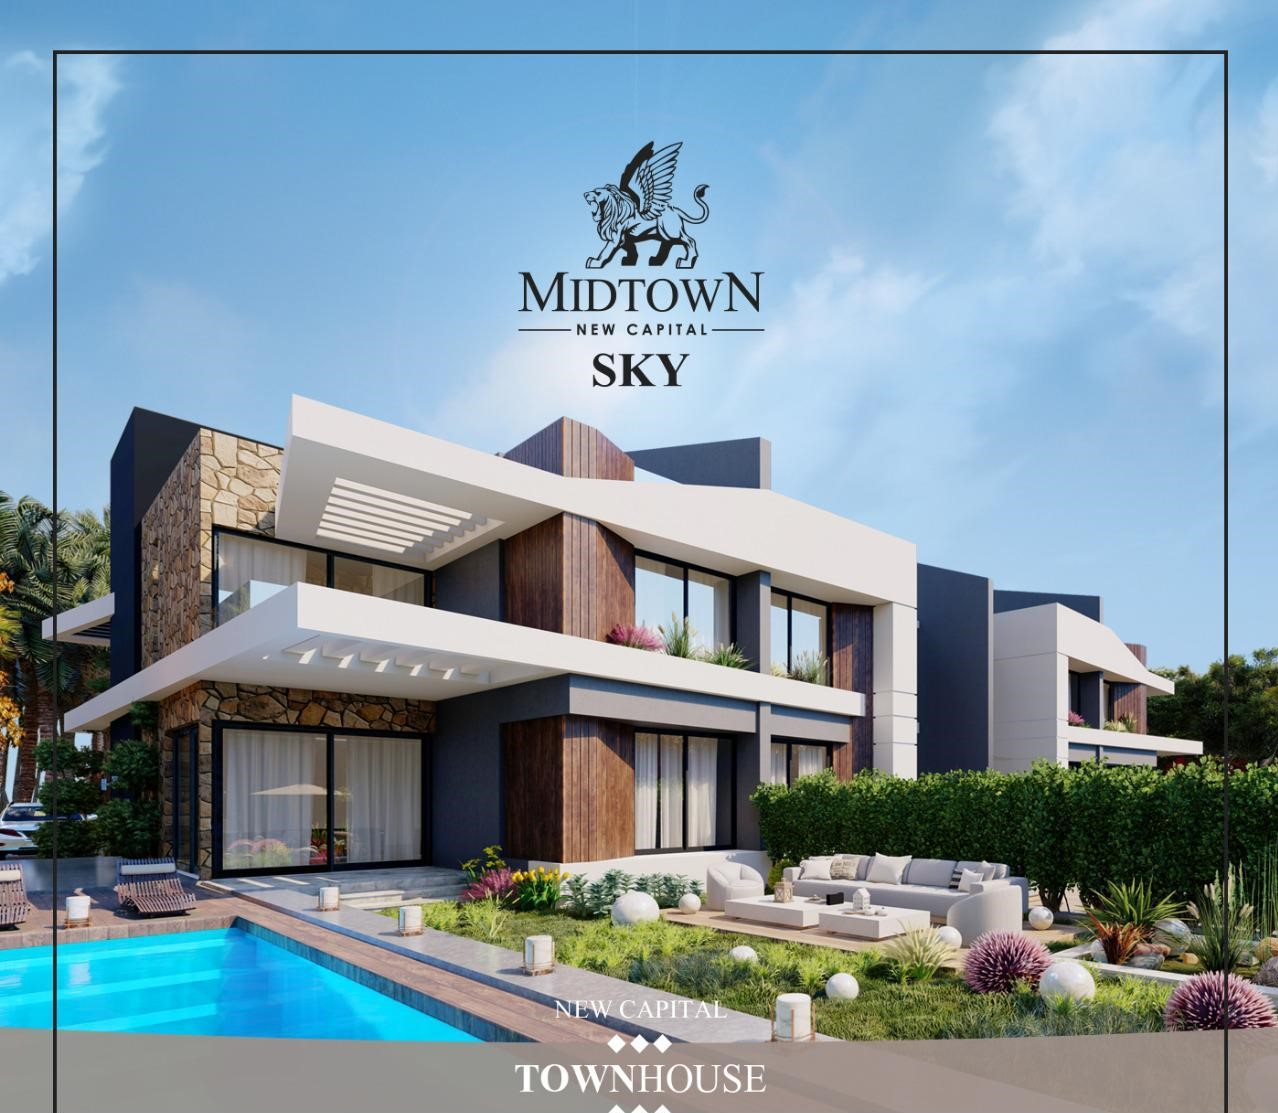 Midtown-Sky-New-Capital-Villa-townhouse-for-sale